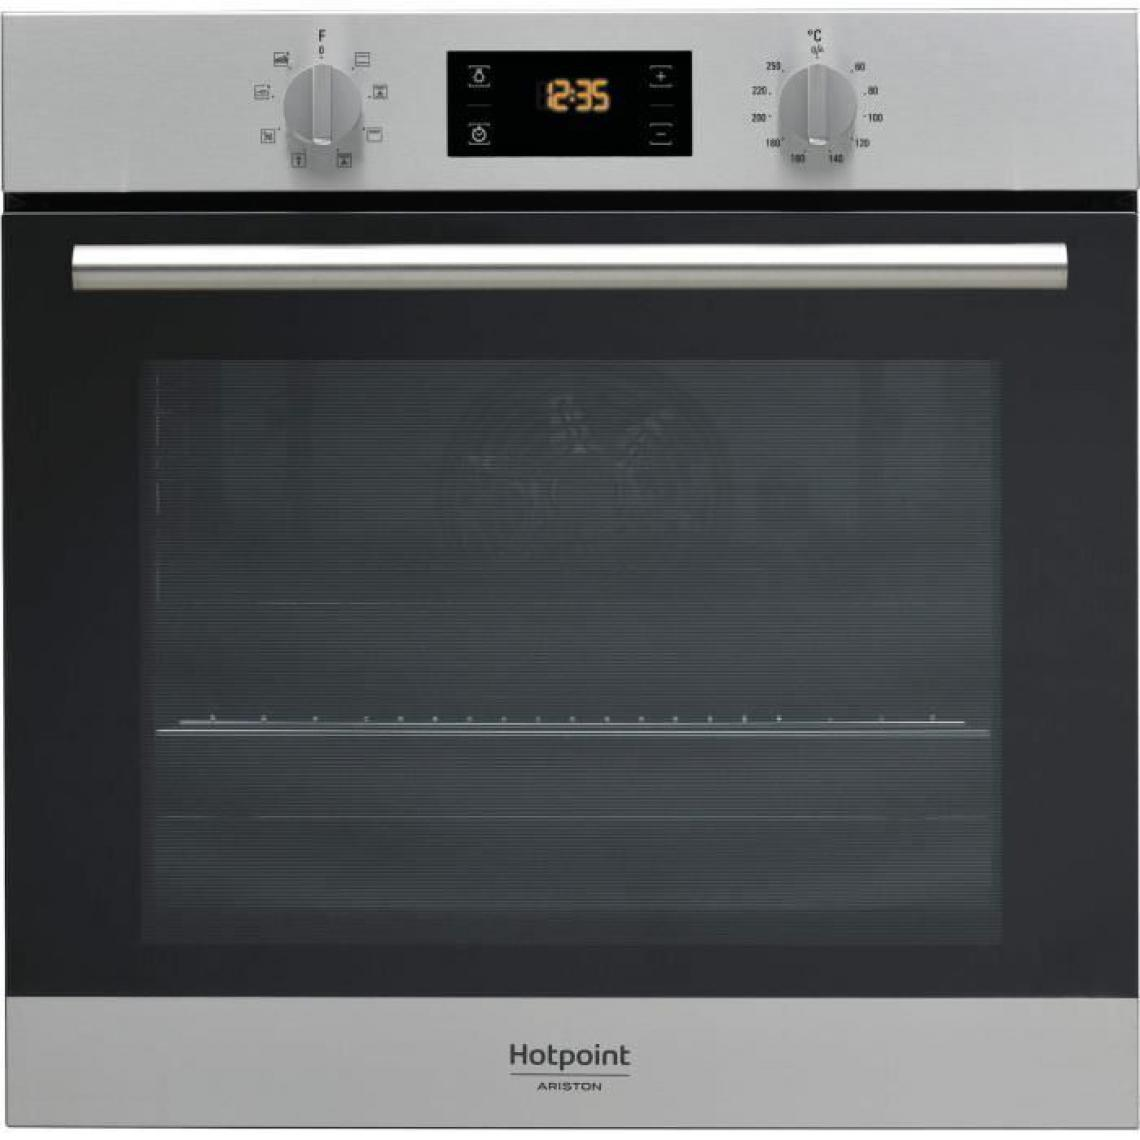 Hotpoint Four encastrable Multifonction 71L HOTPOINT 3600W 59cm A++, HOT8050147001264